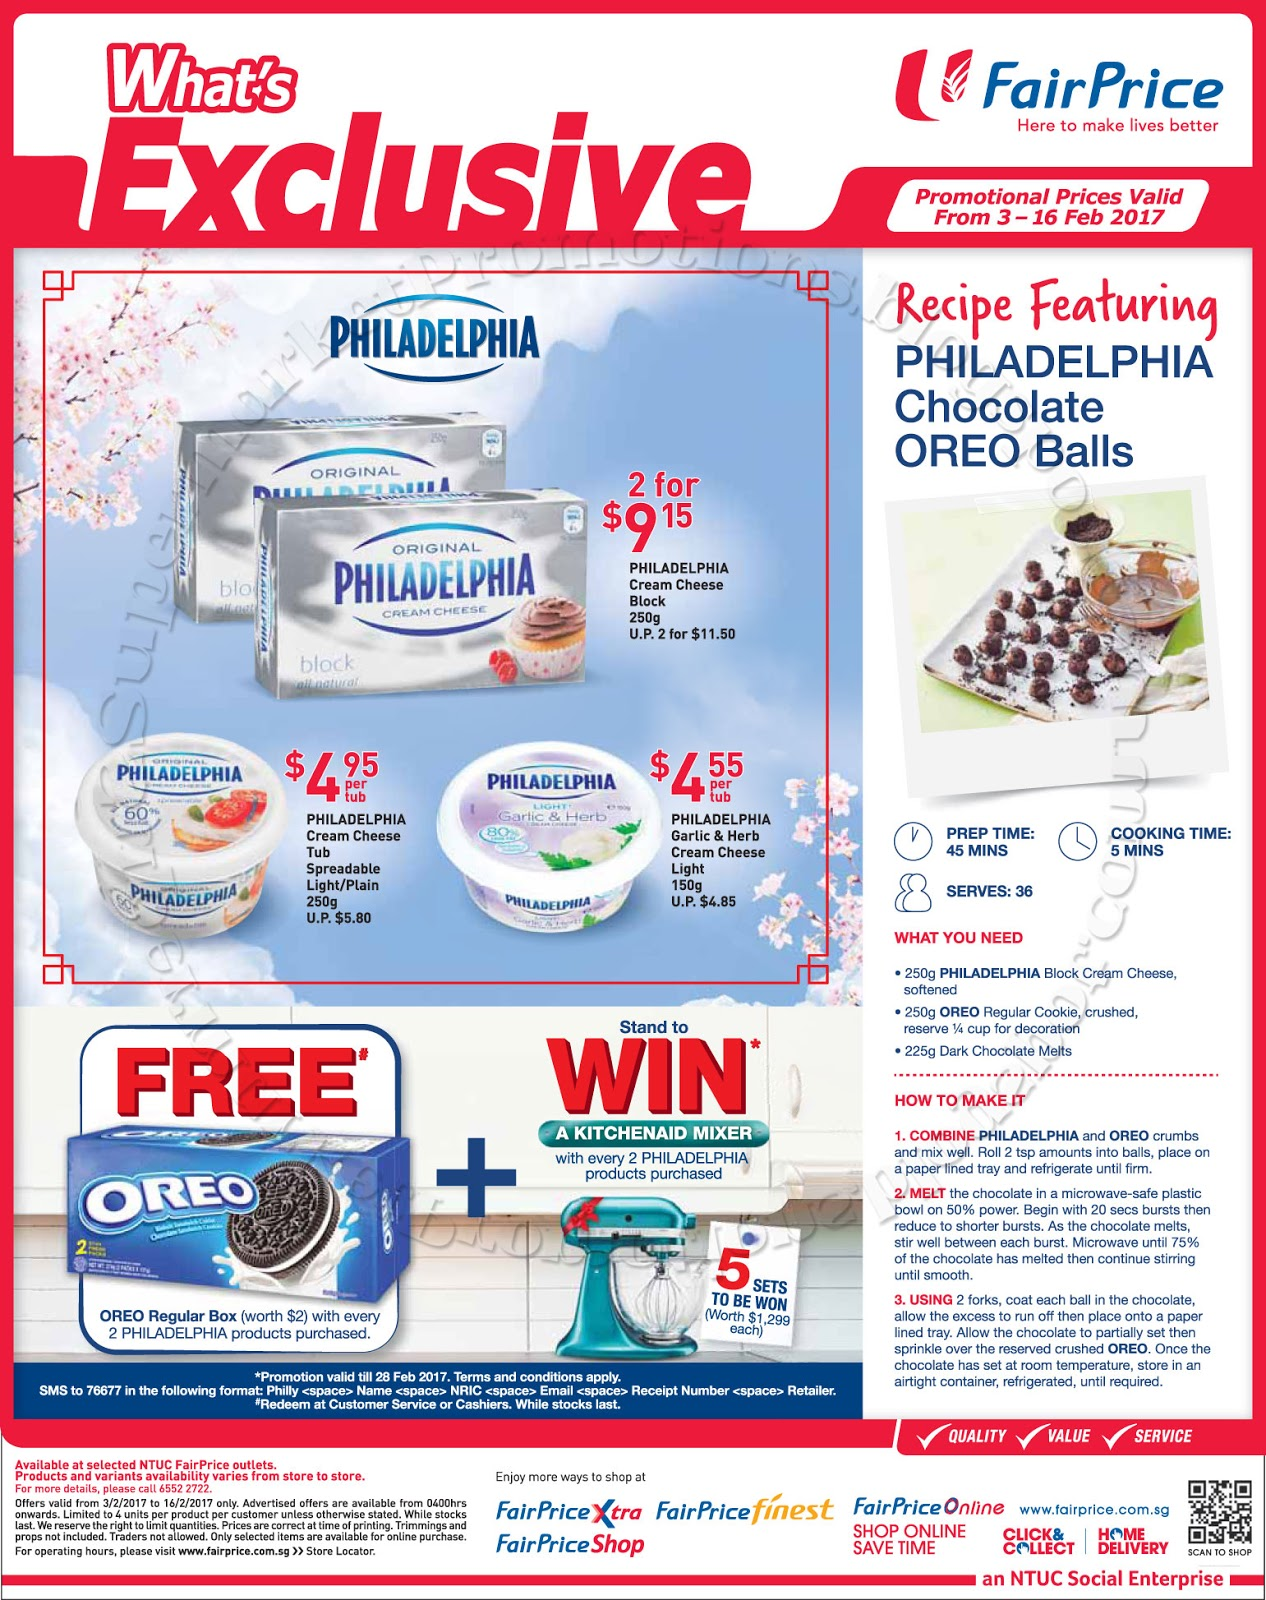 NTUC FairPrice Philadelphia Promotion 03   16 February 2017